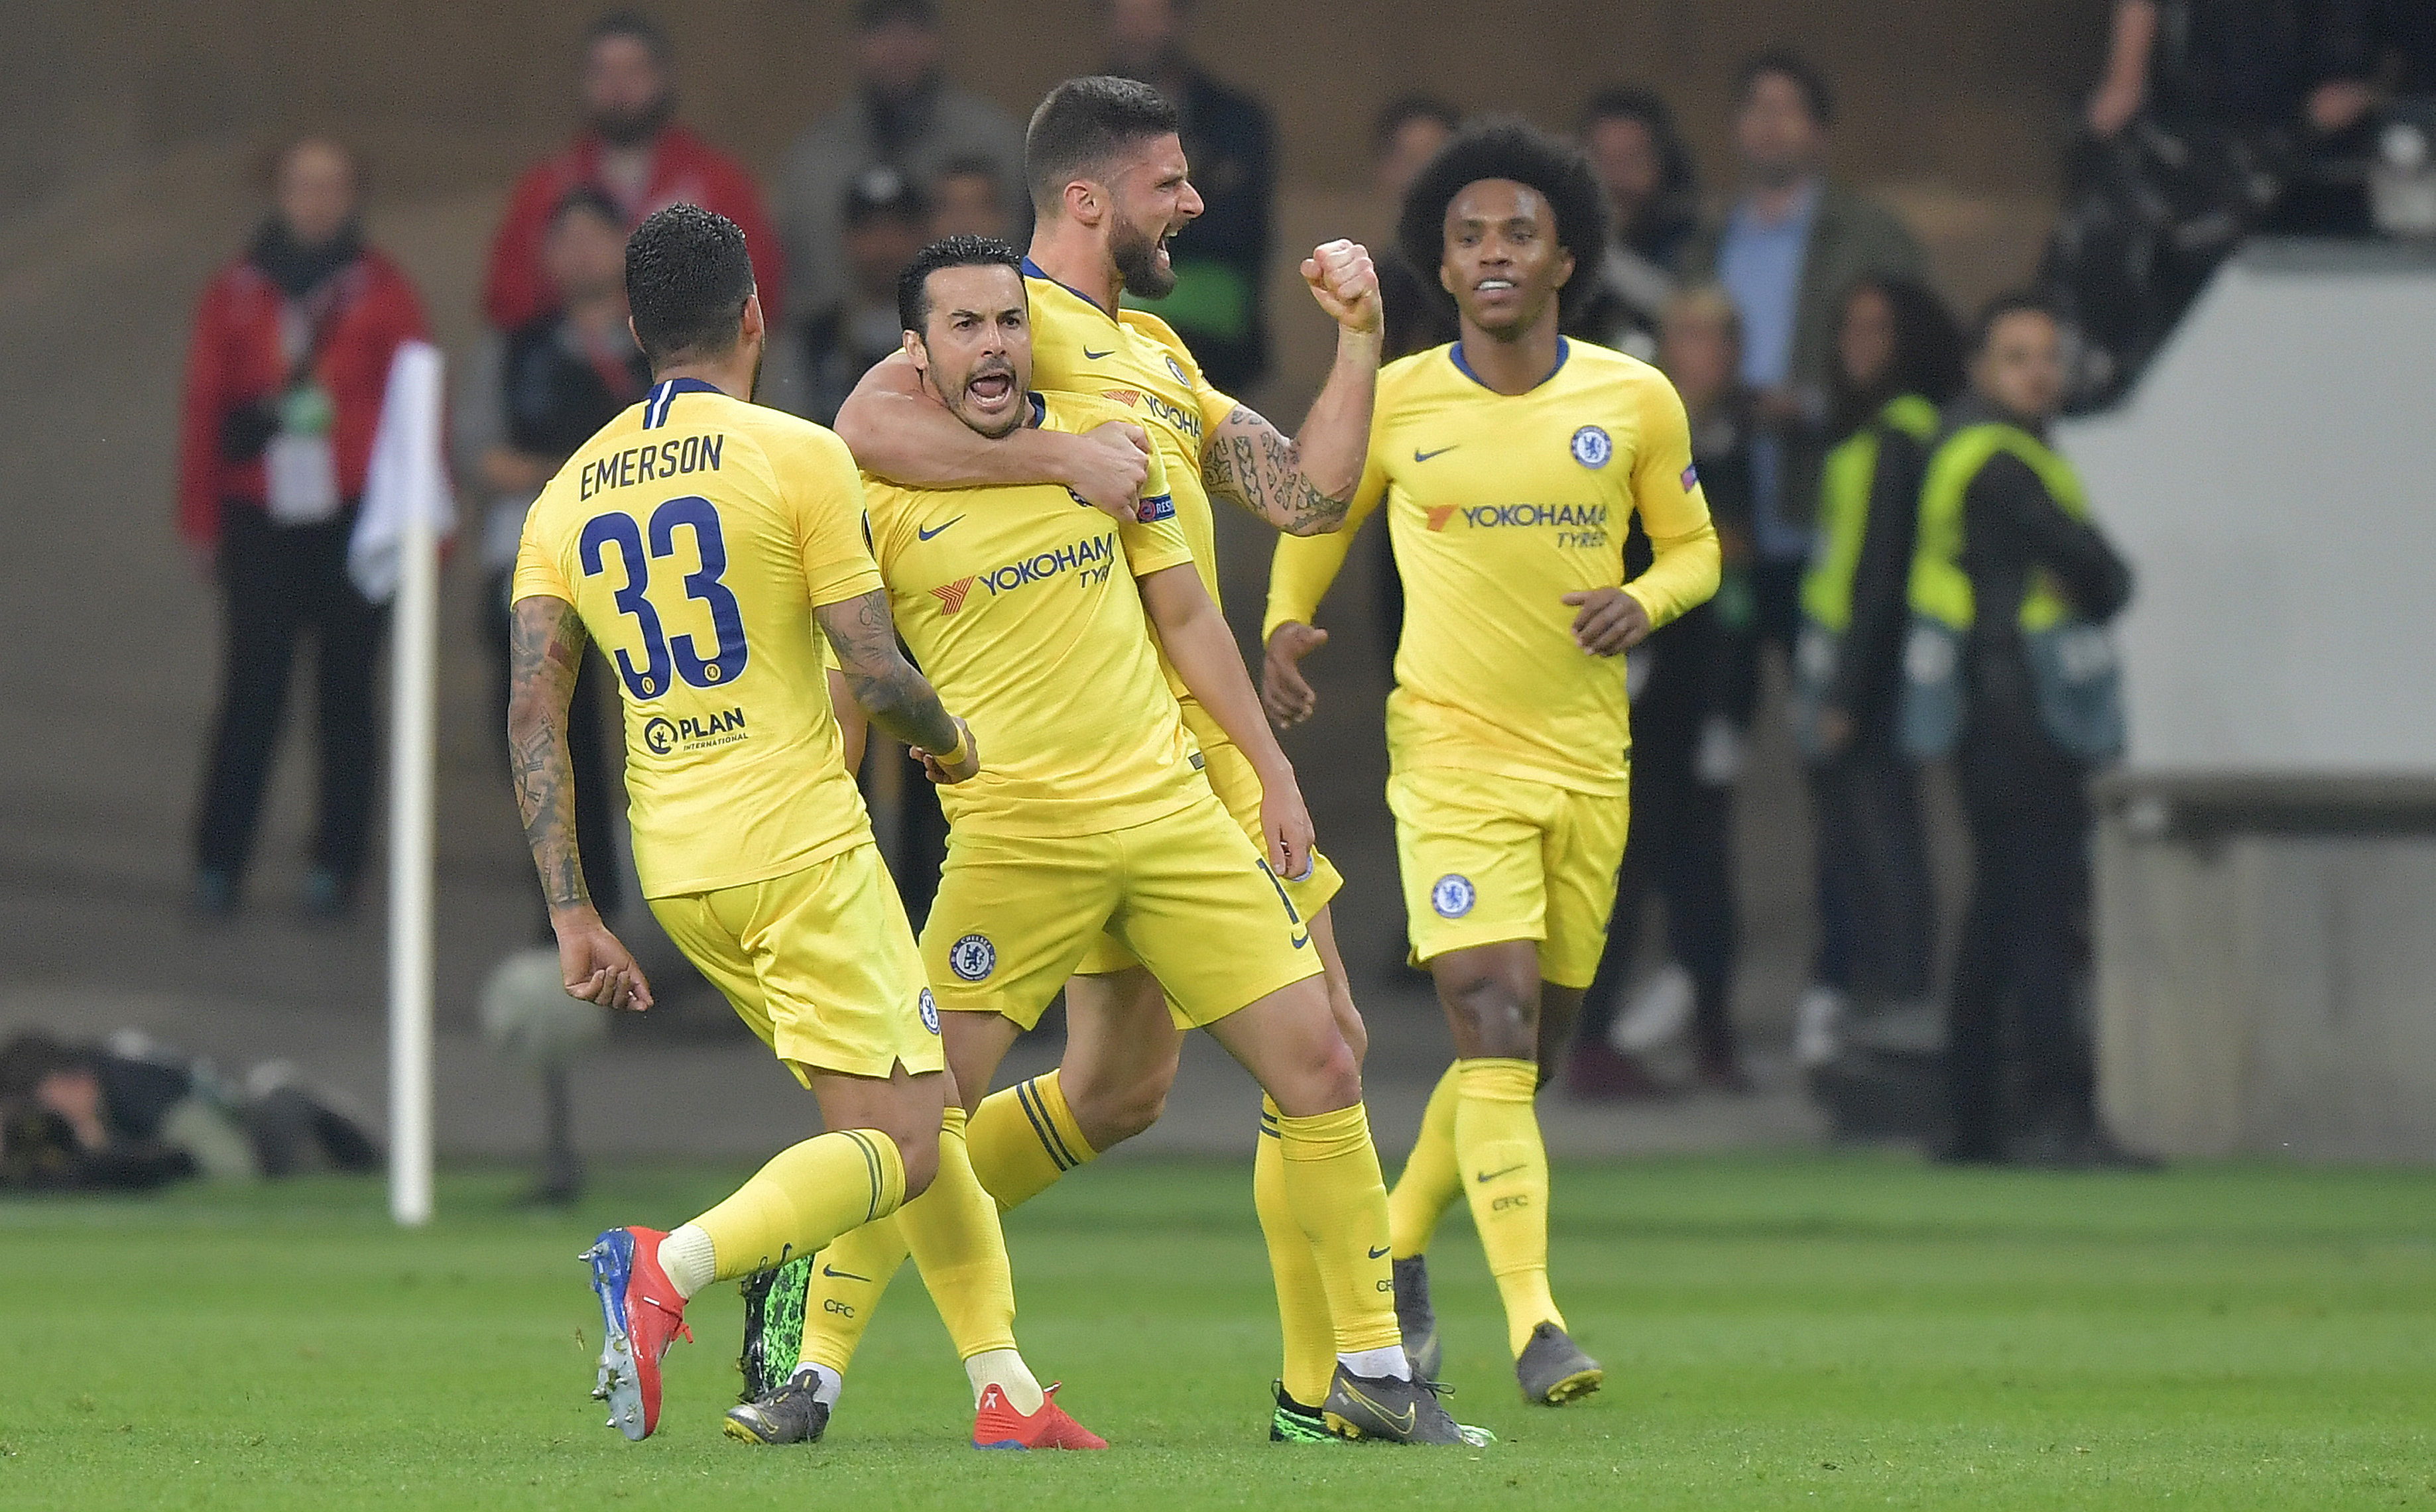 Chelsea forward insists the club are still in a position to challenge for 'titles'